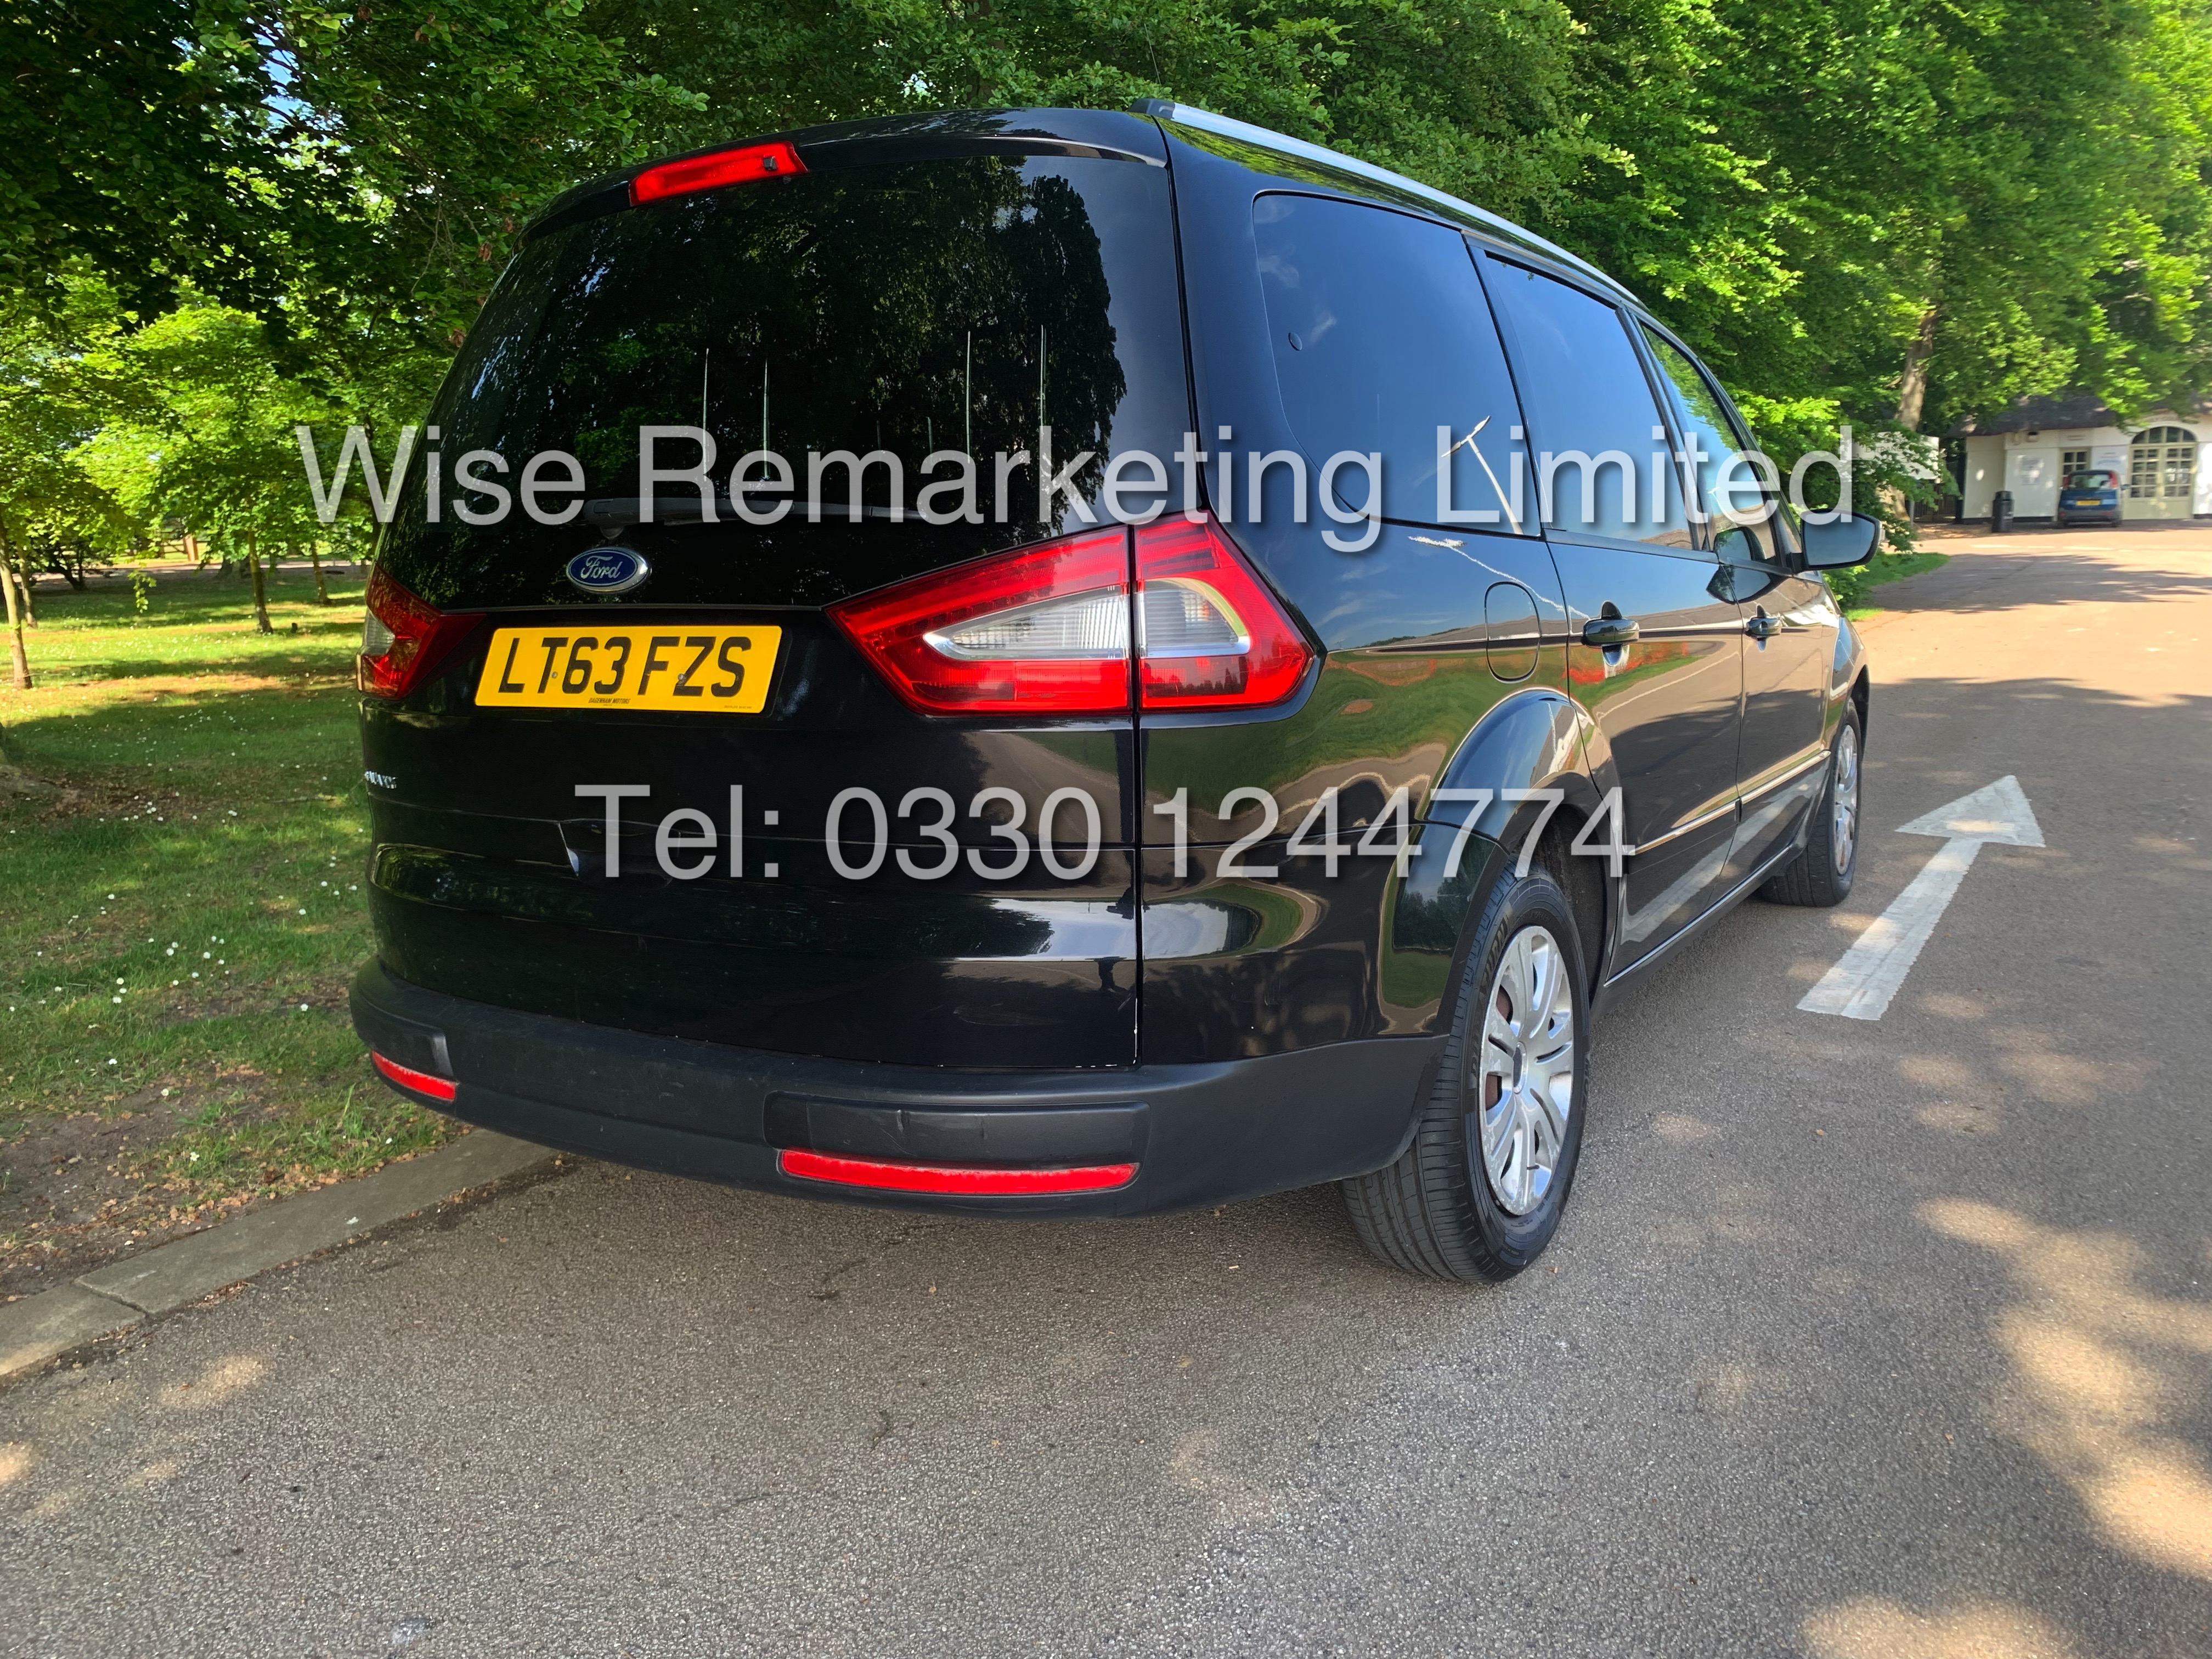 FORD GALAXY ZETEC 2.0L TDCI AUTO 7 SEATER MPV 63 REG *1 OWNER* - Image 7 of 20